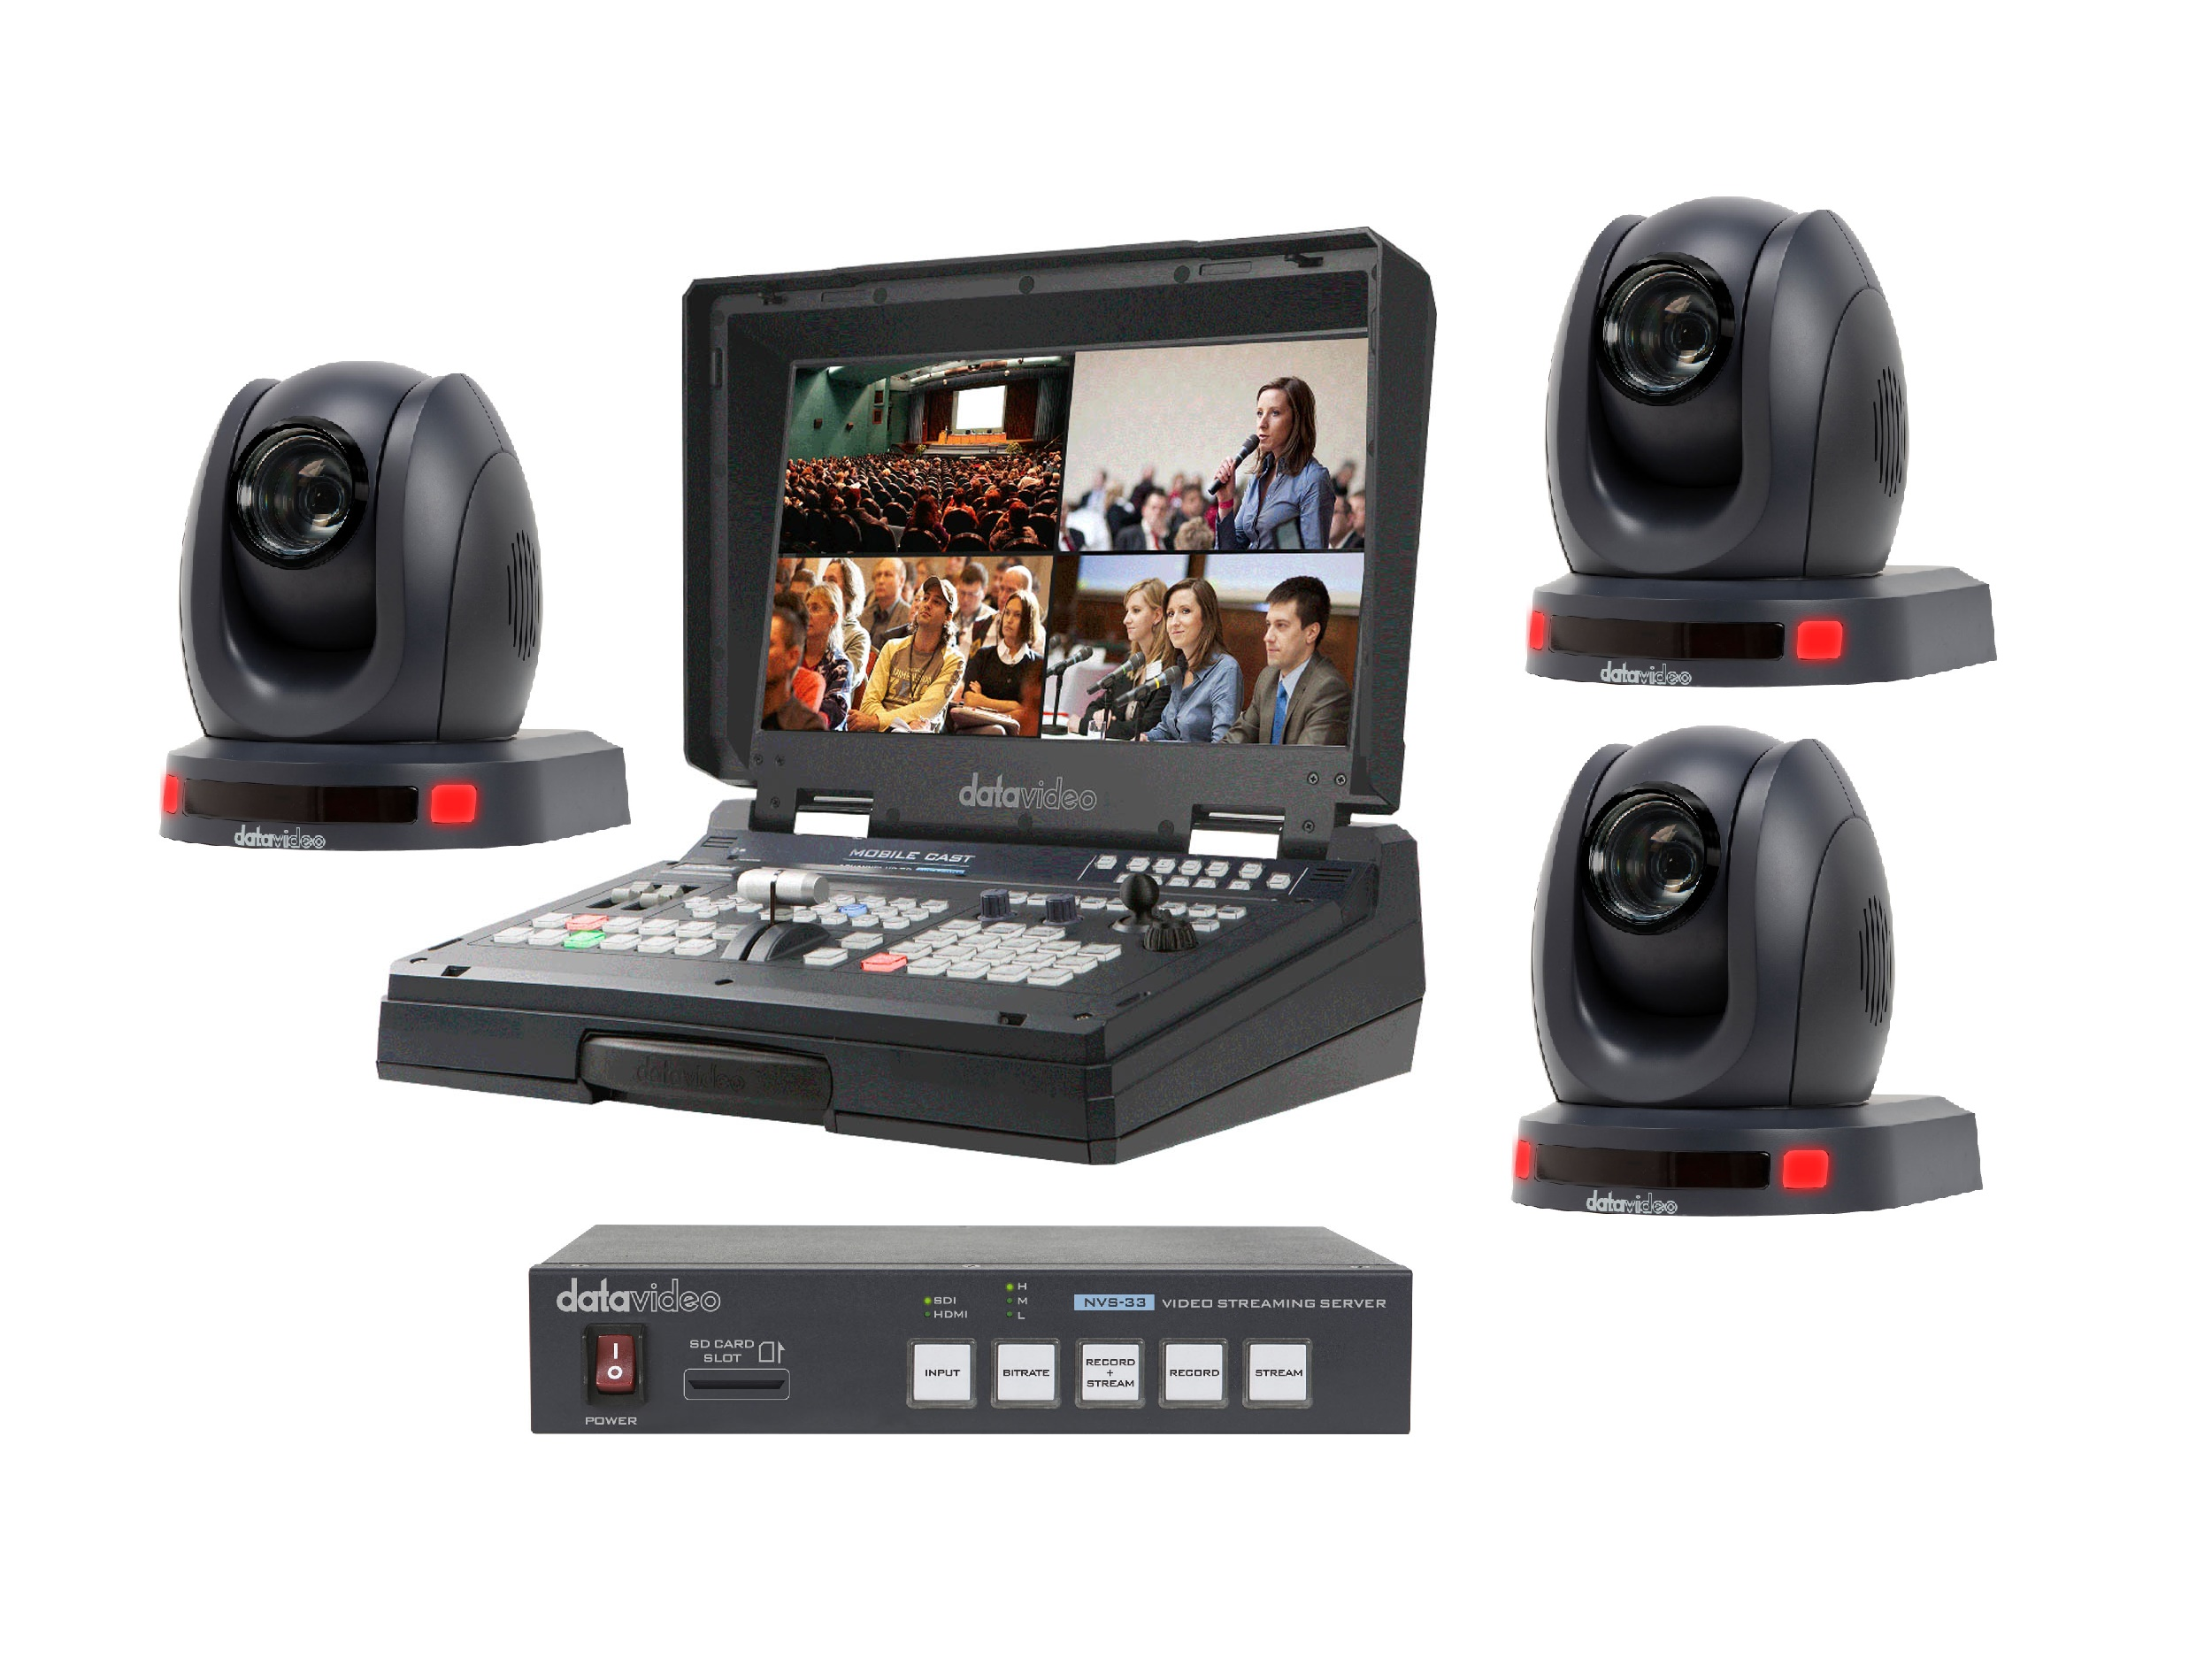 Datavideo HS-1500T-3C-S One Operator Production/Presentation Streaming Solutions Kit with 3x Cameras